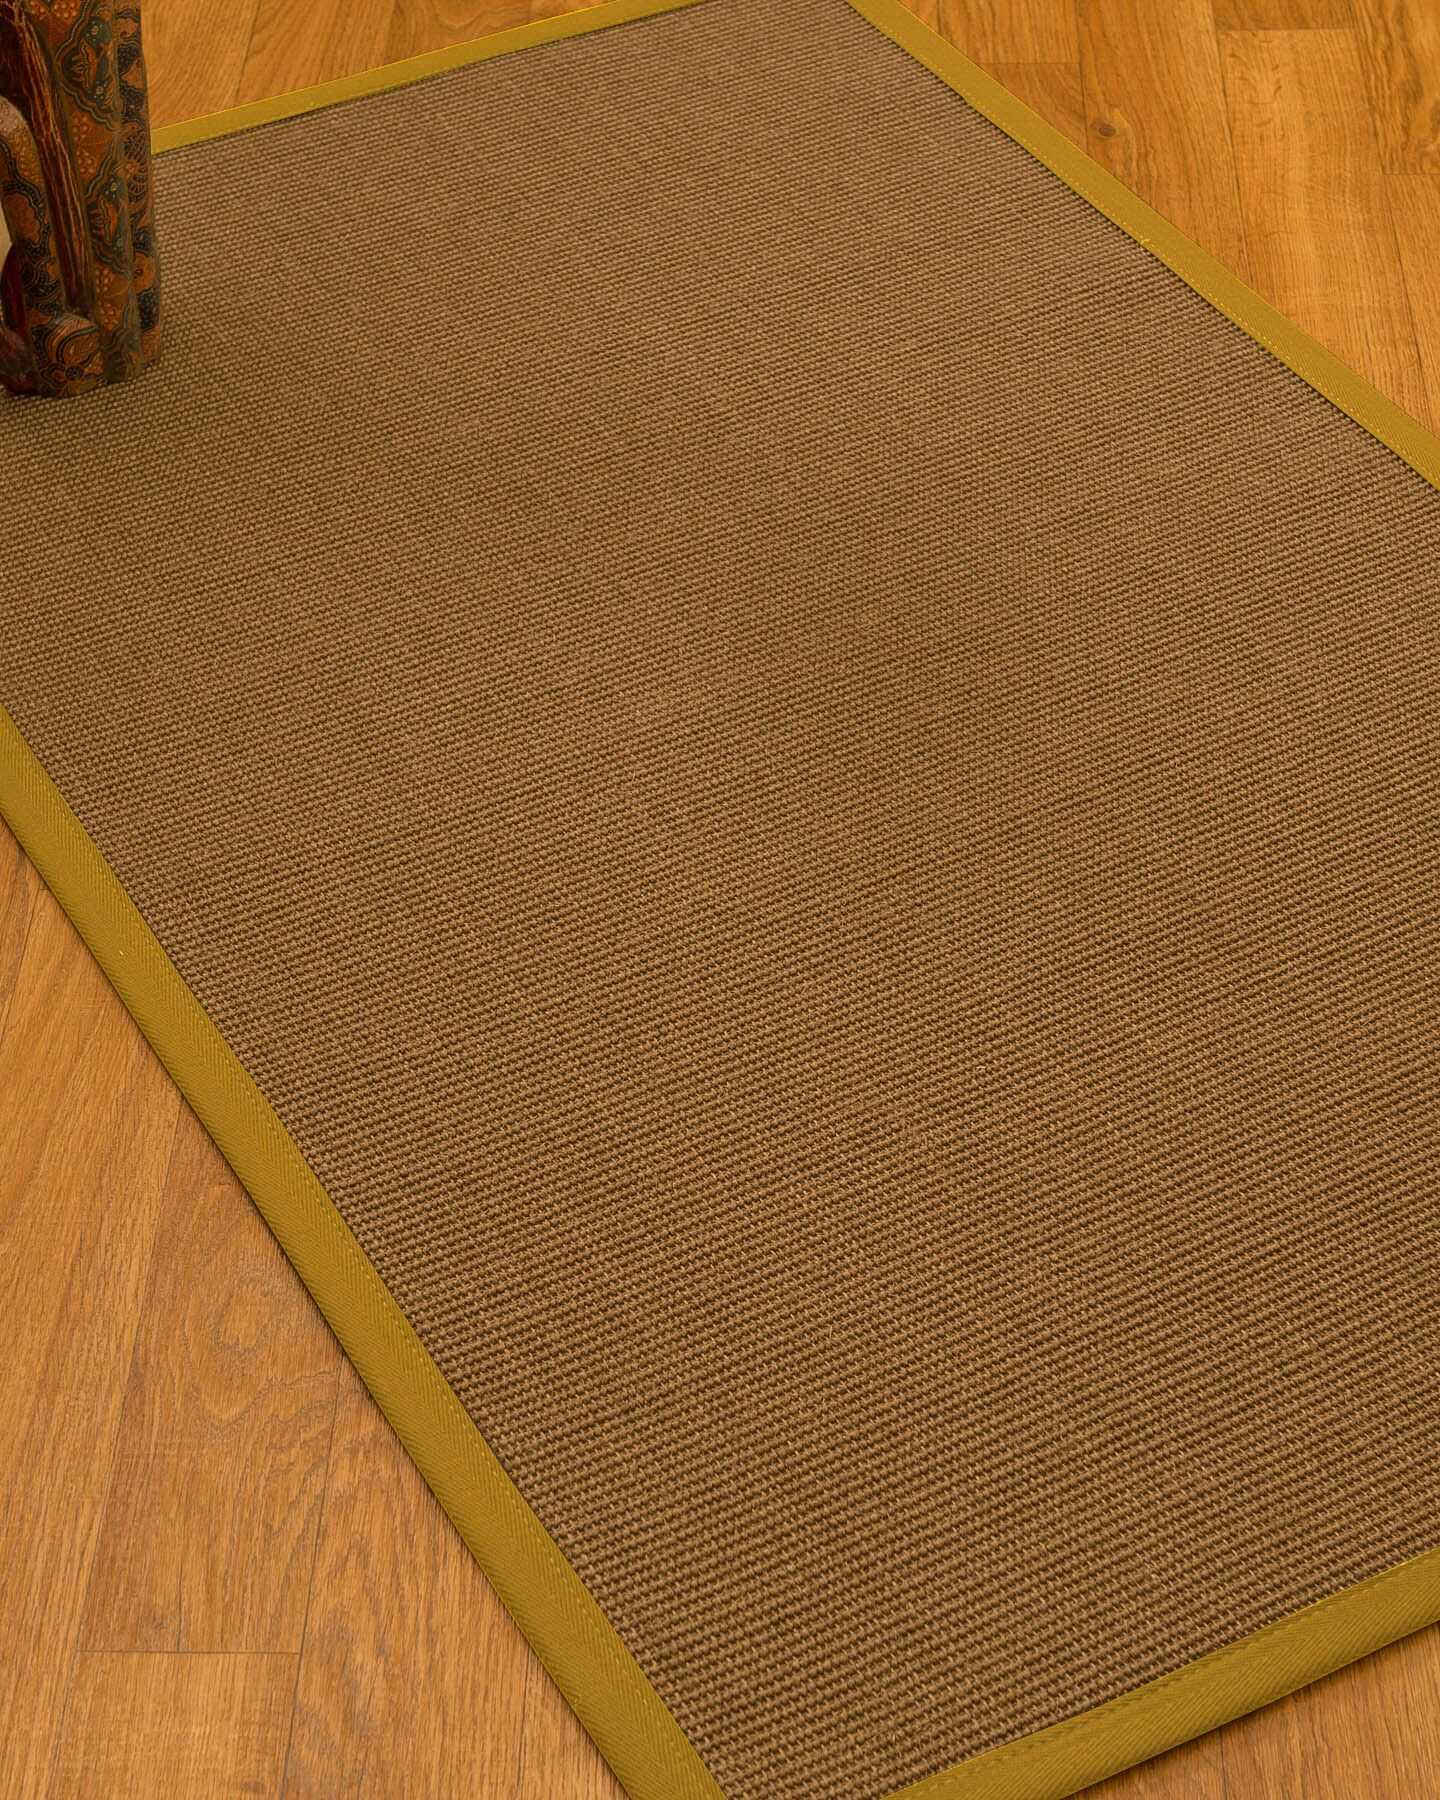 Huntwood Border Hand-Woven Brown/Tan Area Rug Rug Size: Rectangle 9' x 12', Rug Pad Included: Yes